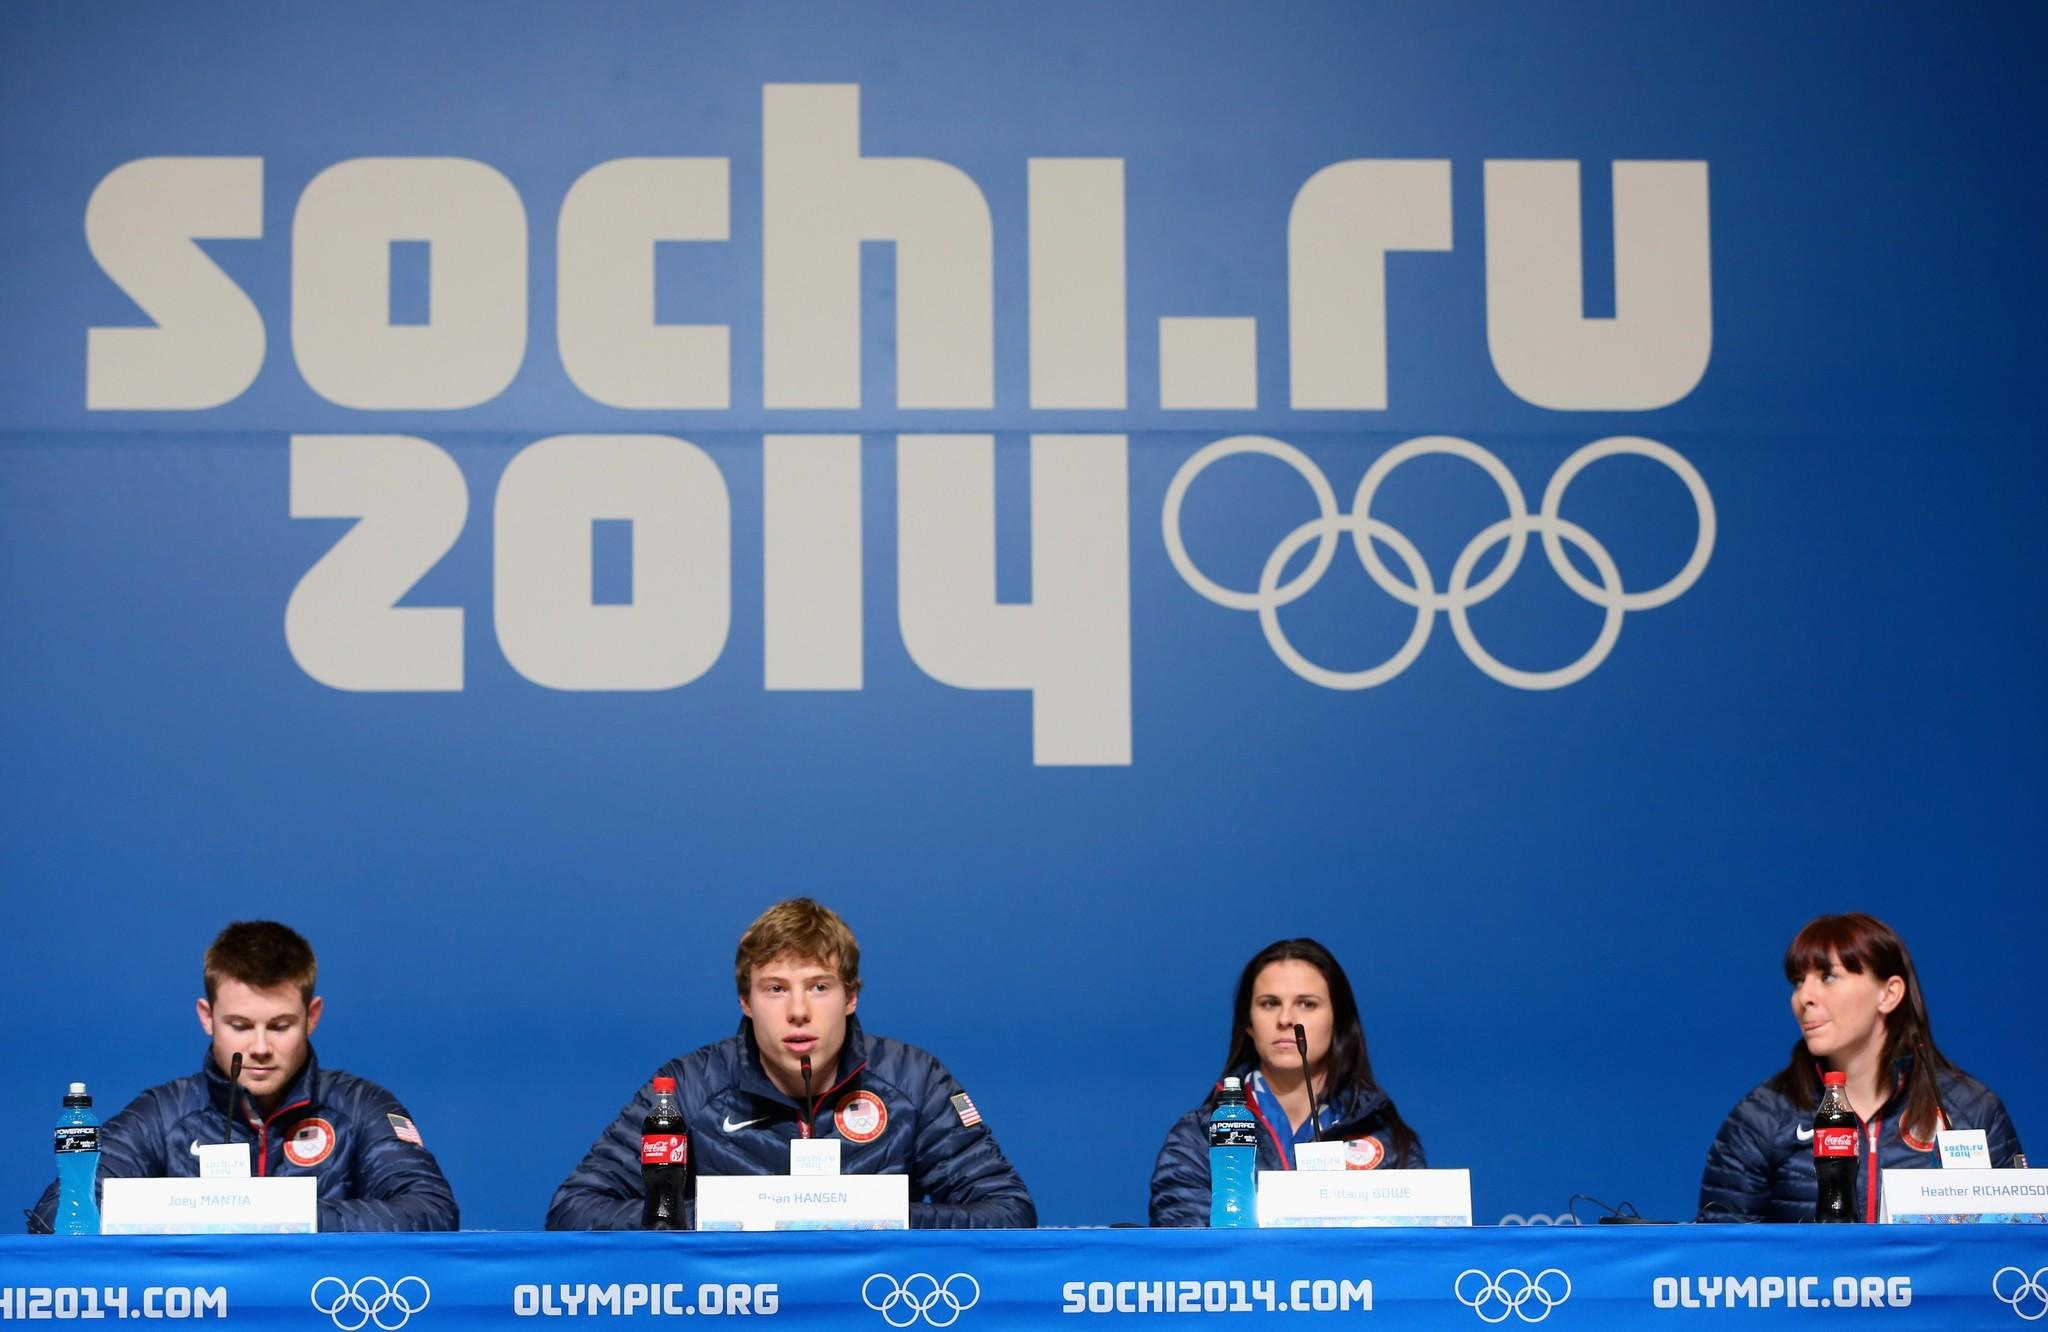 Joey Mantia, Brian Hansen, Brittany Bowe and Heather Richardson of the USA speed skating team speak at a press conference ahead of the Sochi 2014 Winter Olympics at the Main Press Center (MPC) on February 6, 2014 in Sochi, Russia.